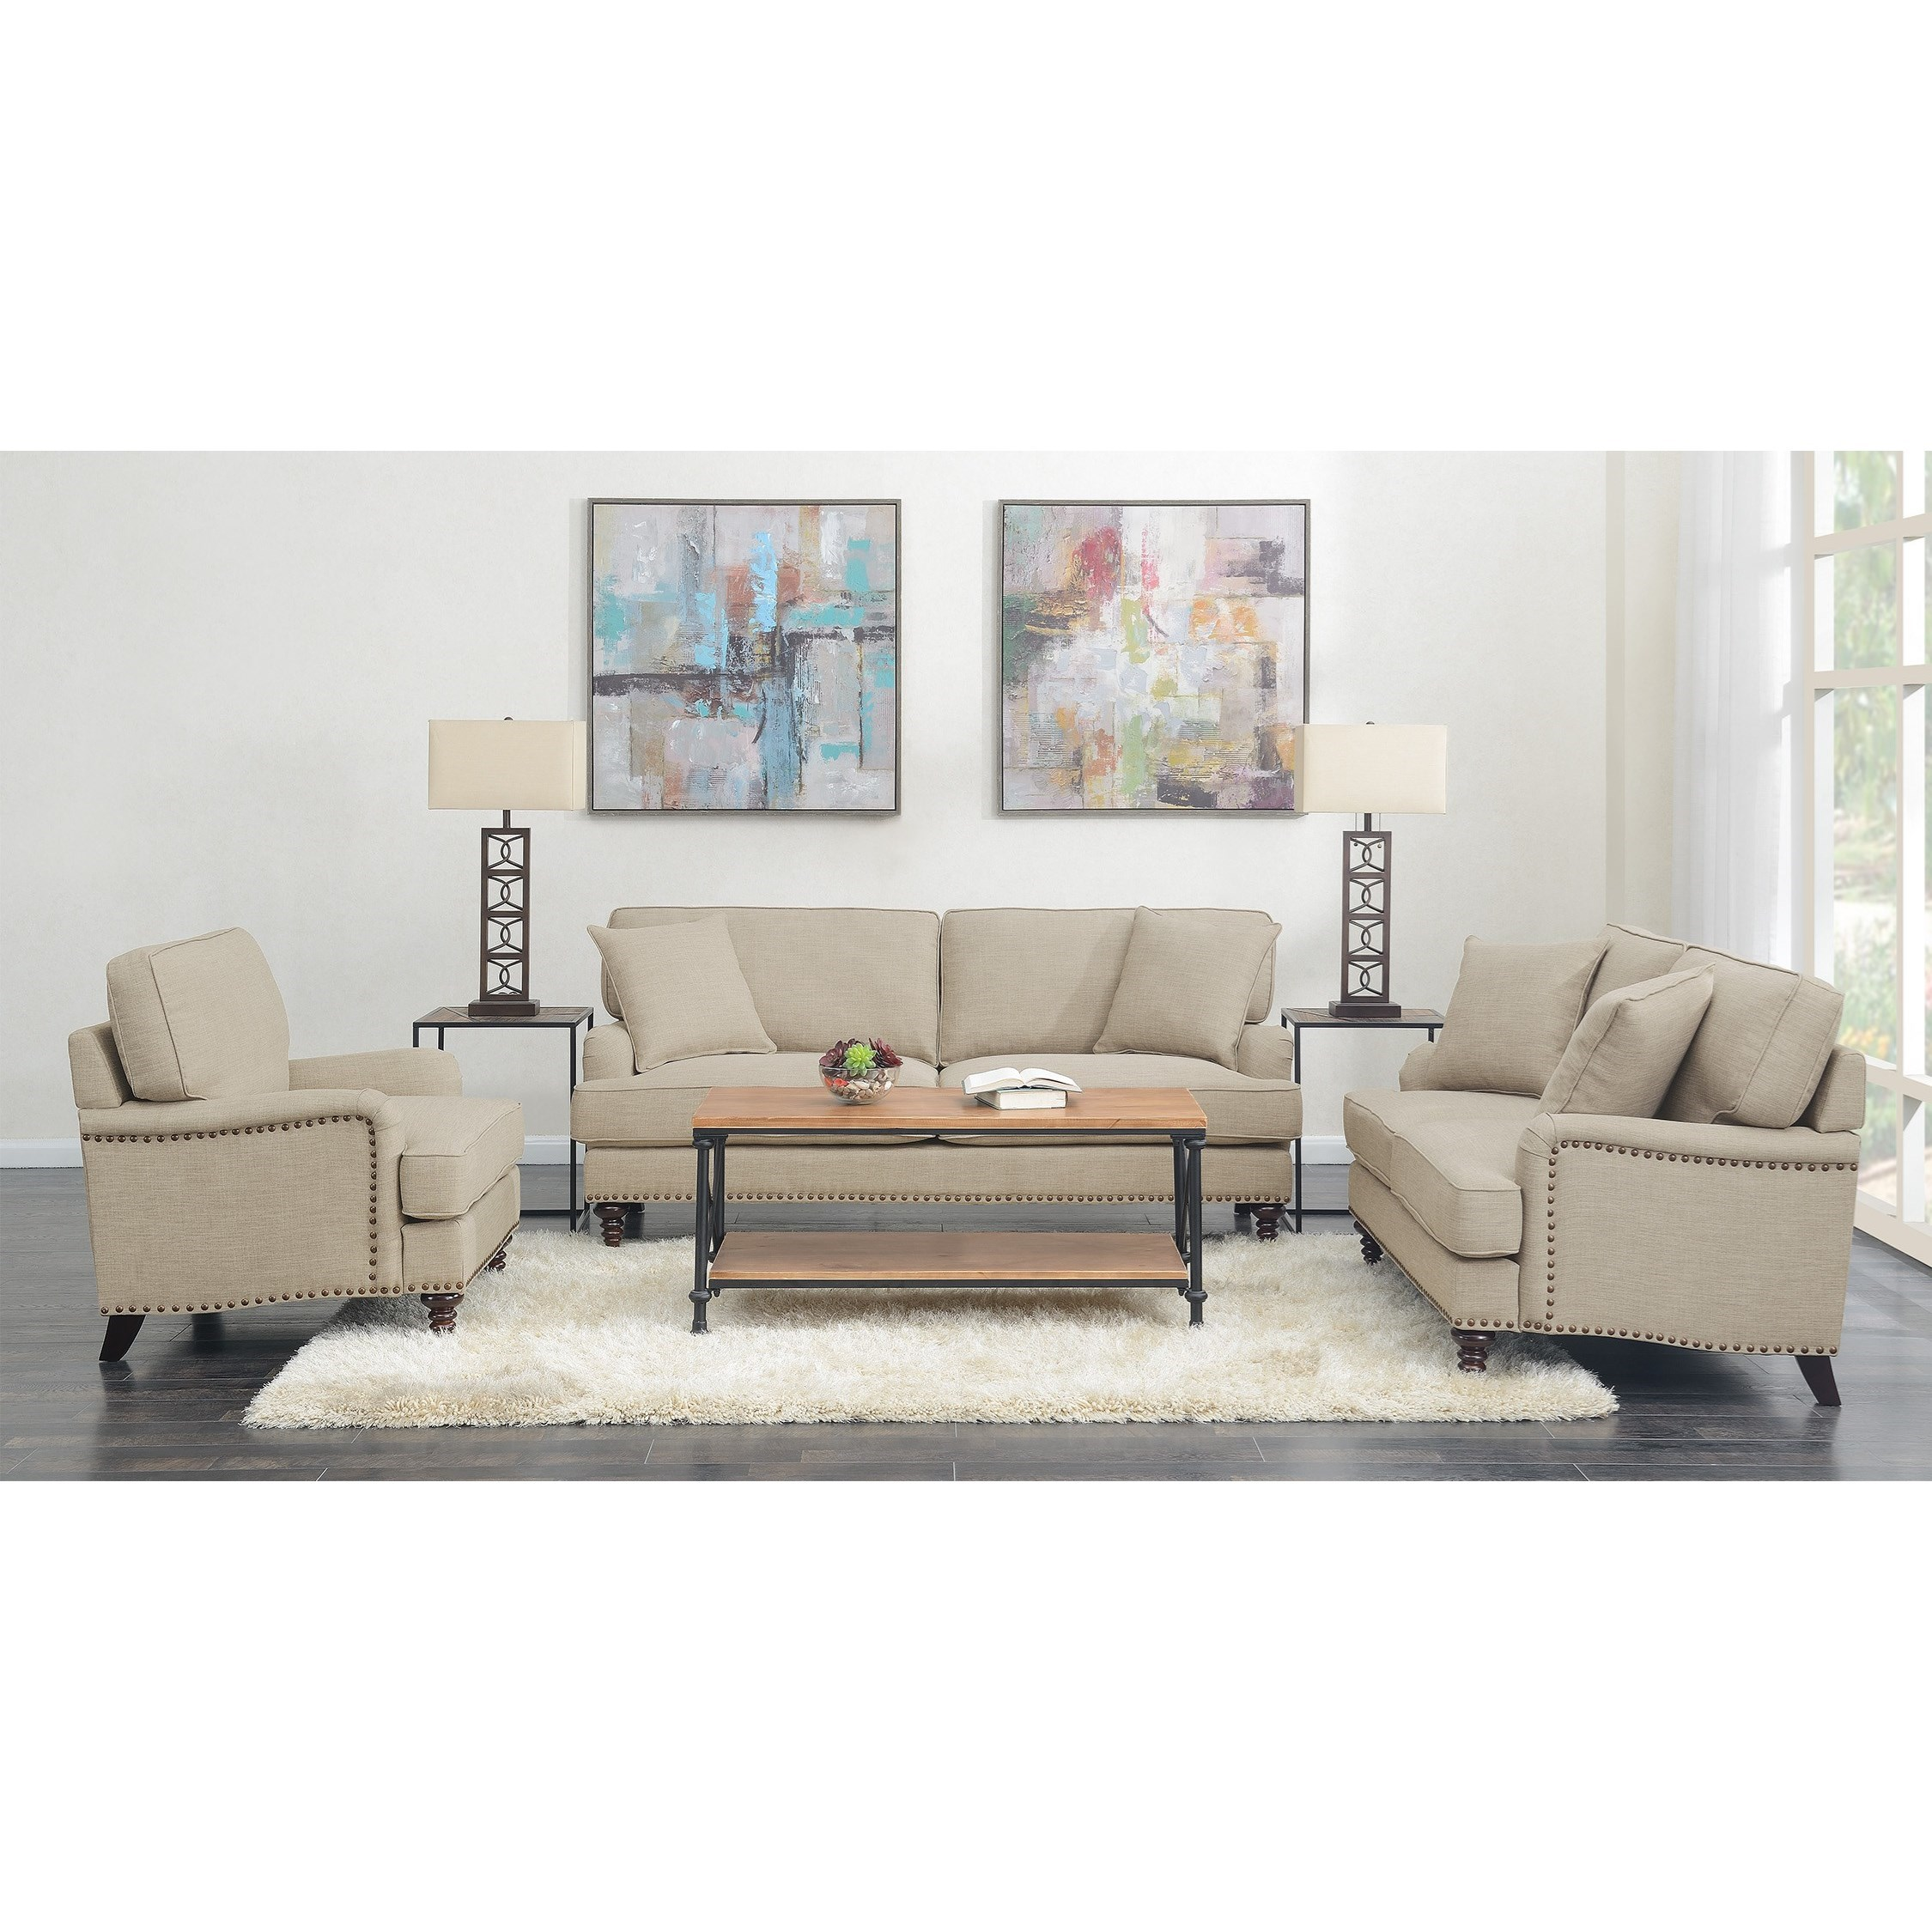 3PC Set-Sofa, Loveseat & Chair